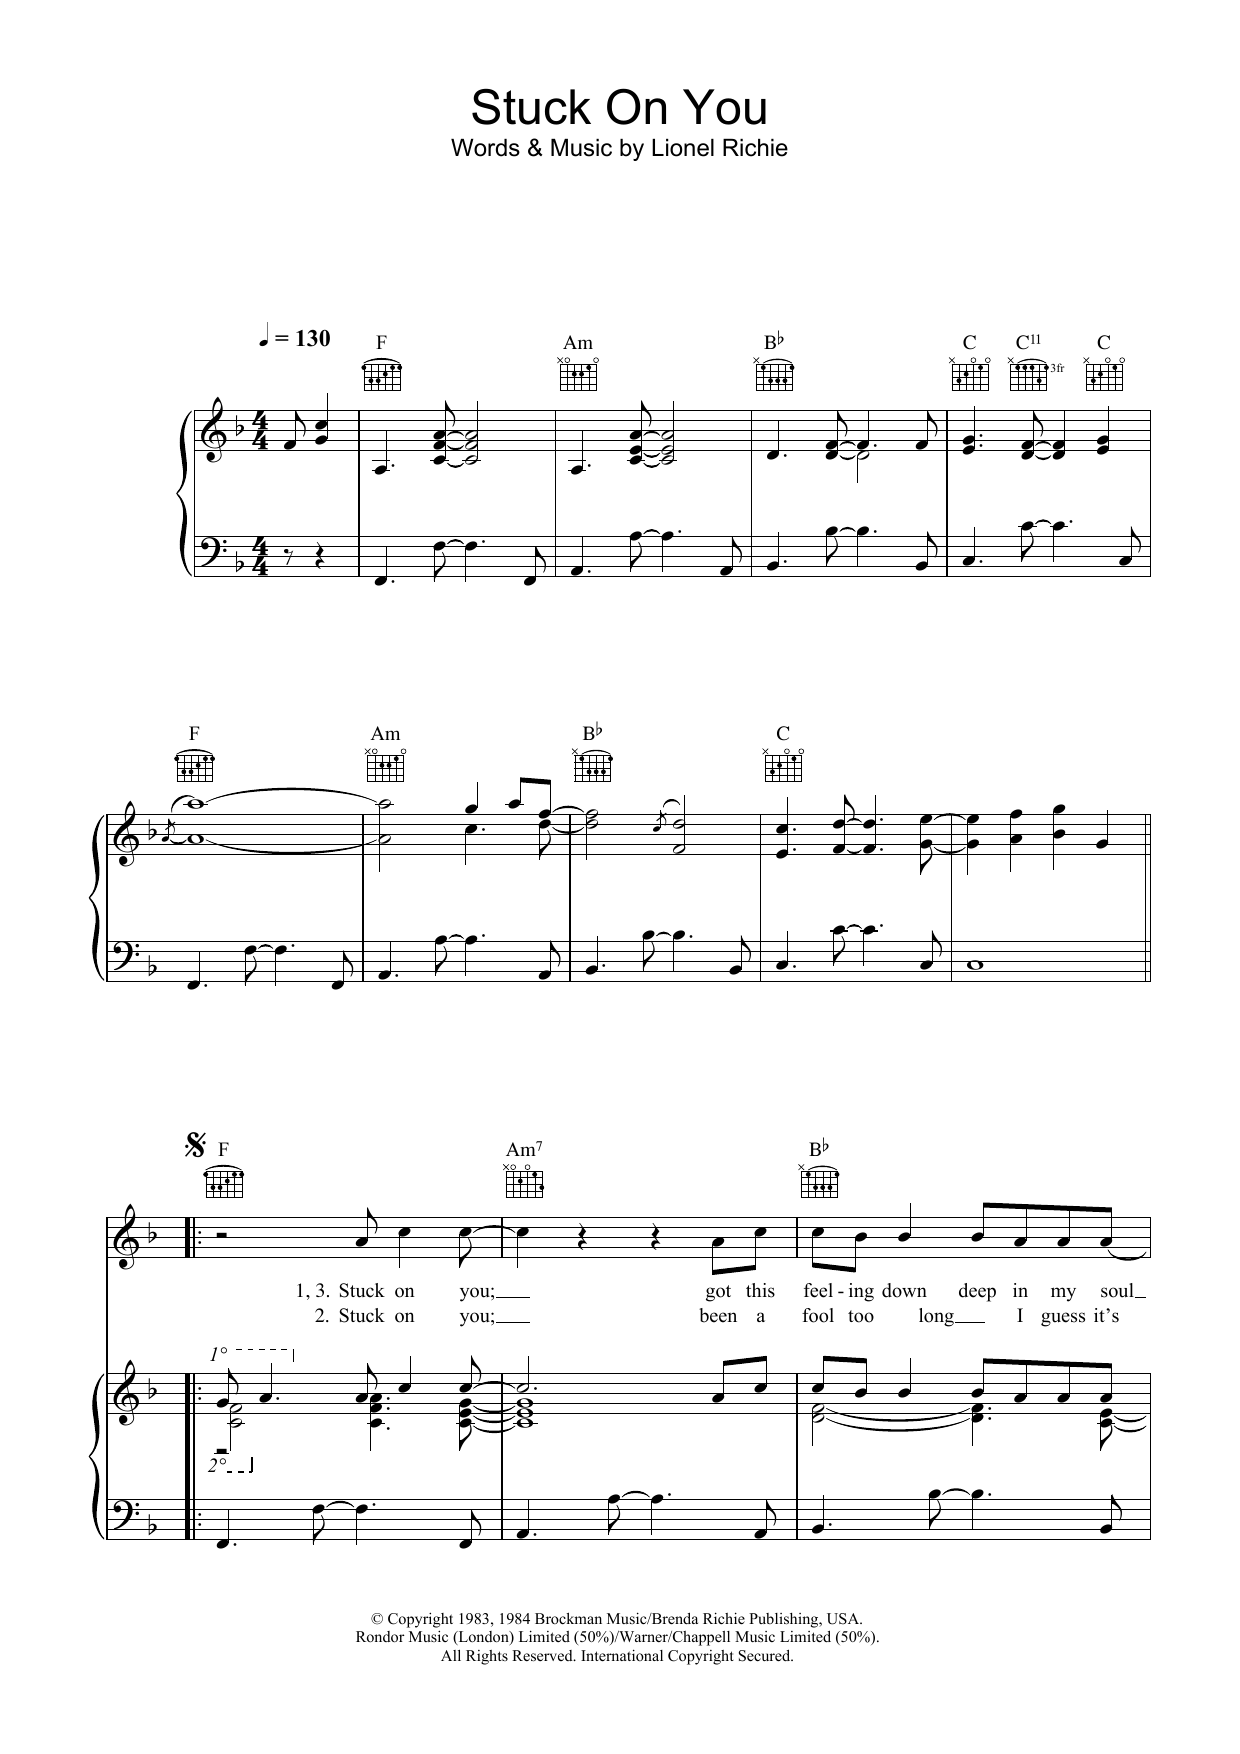 Stuck on you guitar chords